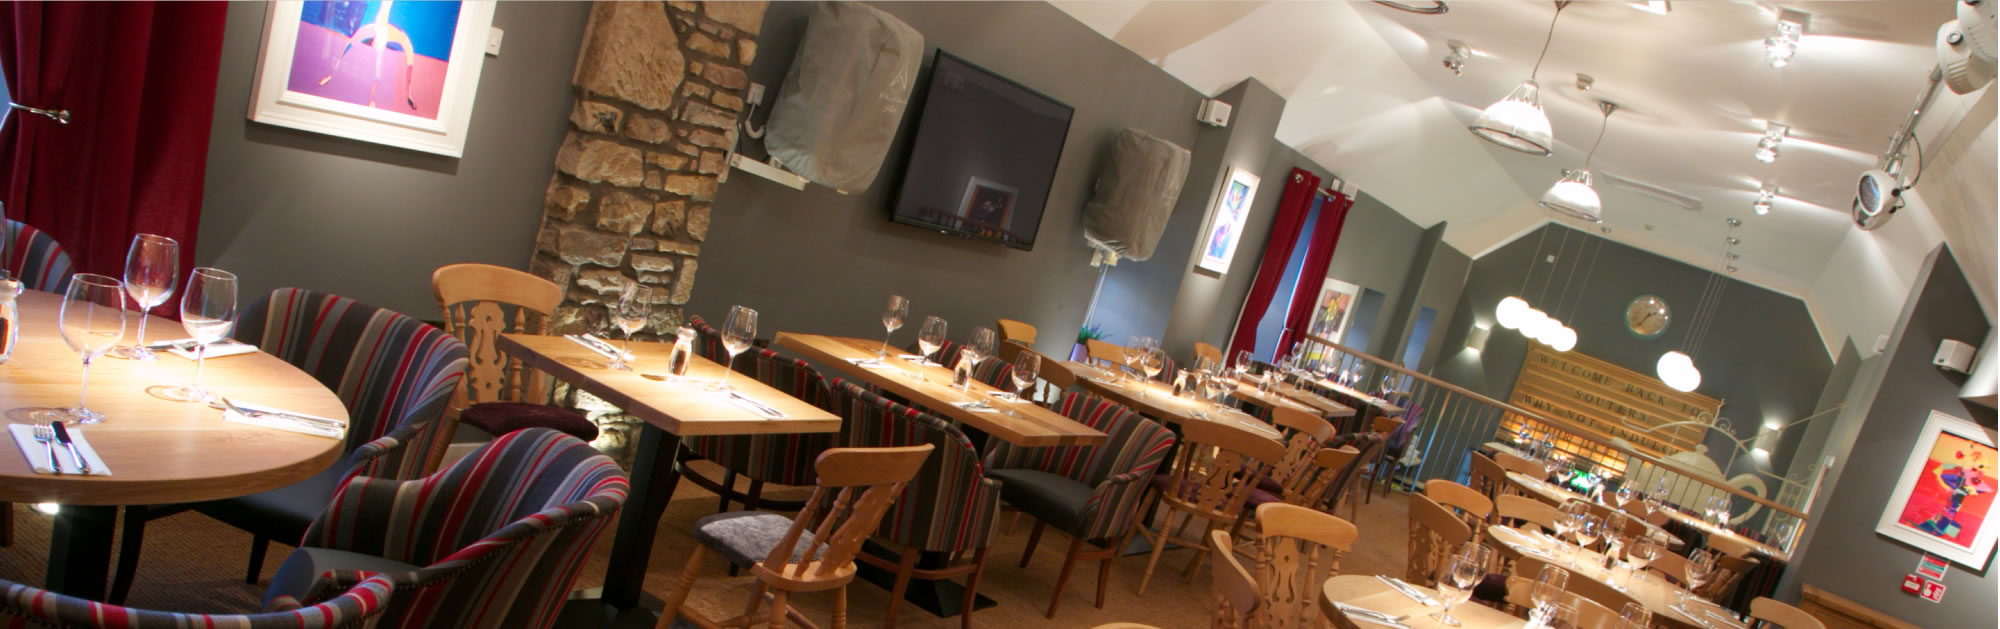 Wine and Dine: A warm welcome and relaxed friendly atmosphere awaits